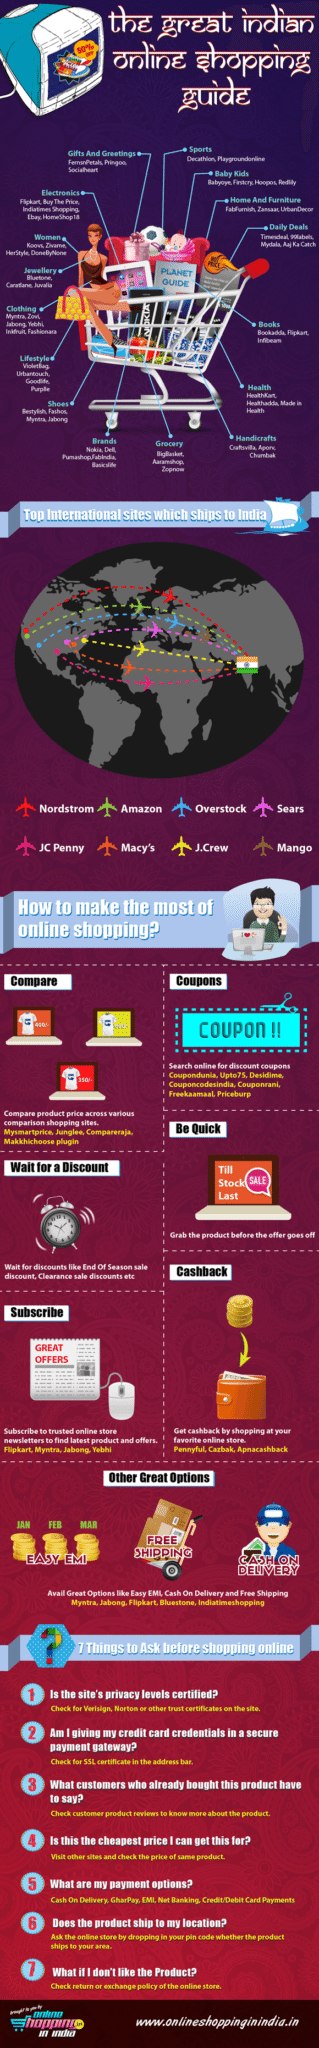 indina-online-shopping-guide